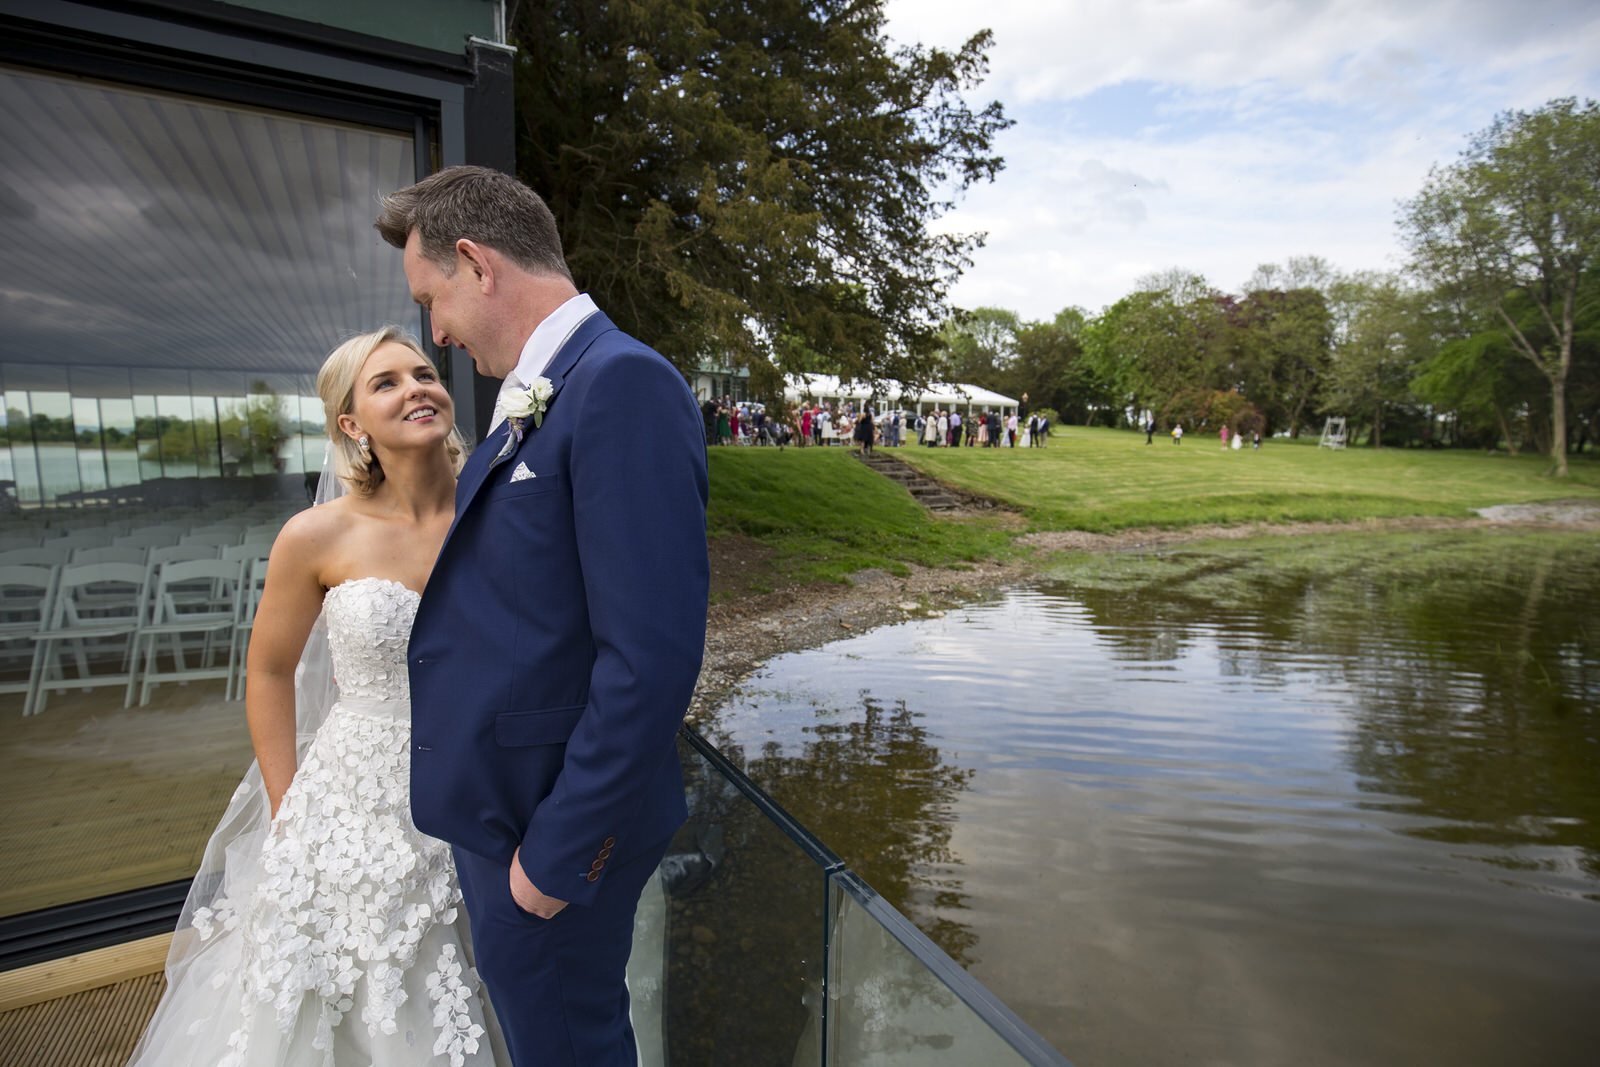 Ashley_park_wedding_photographer_ireland_a188.jpg